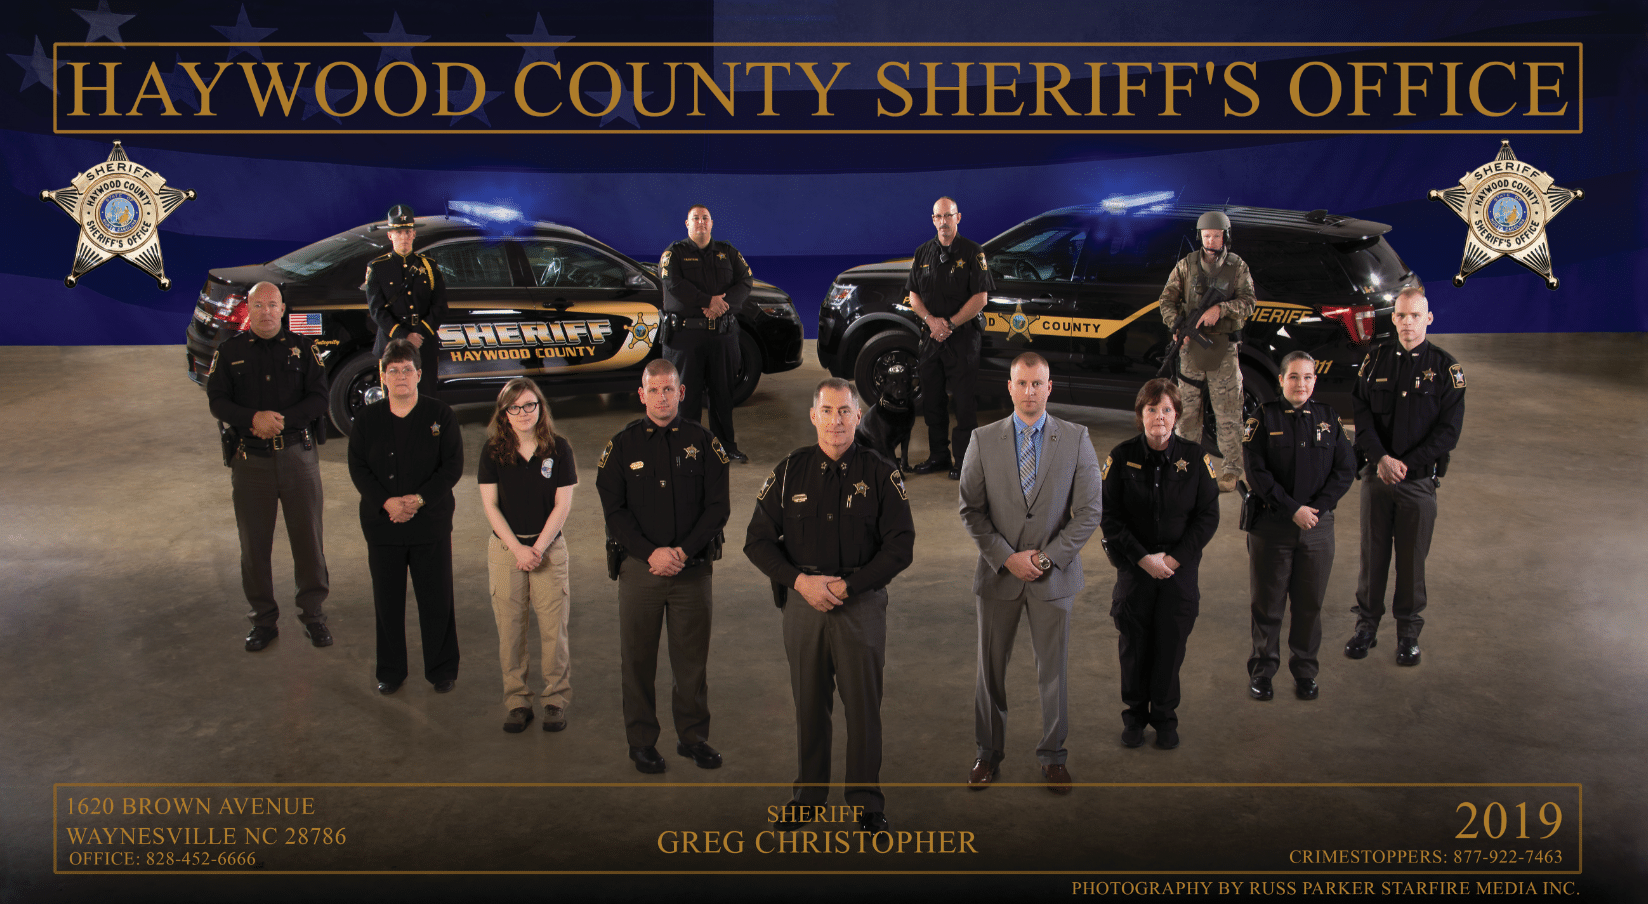 Haywood County Sheriff's Office